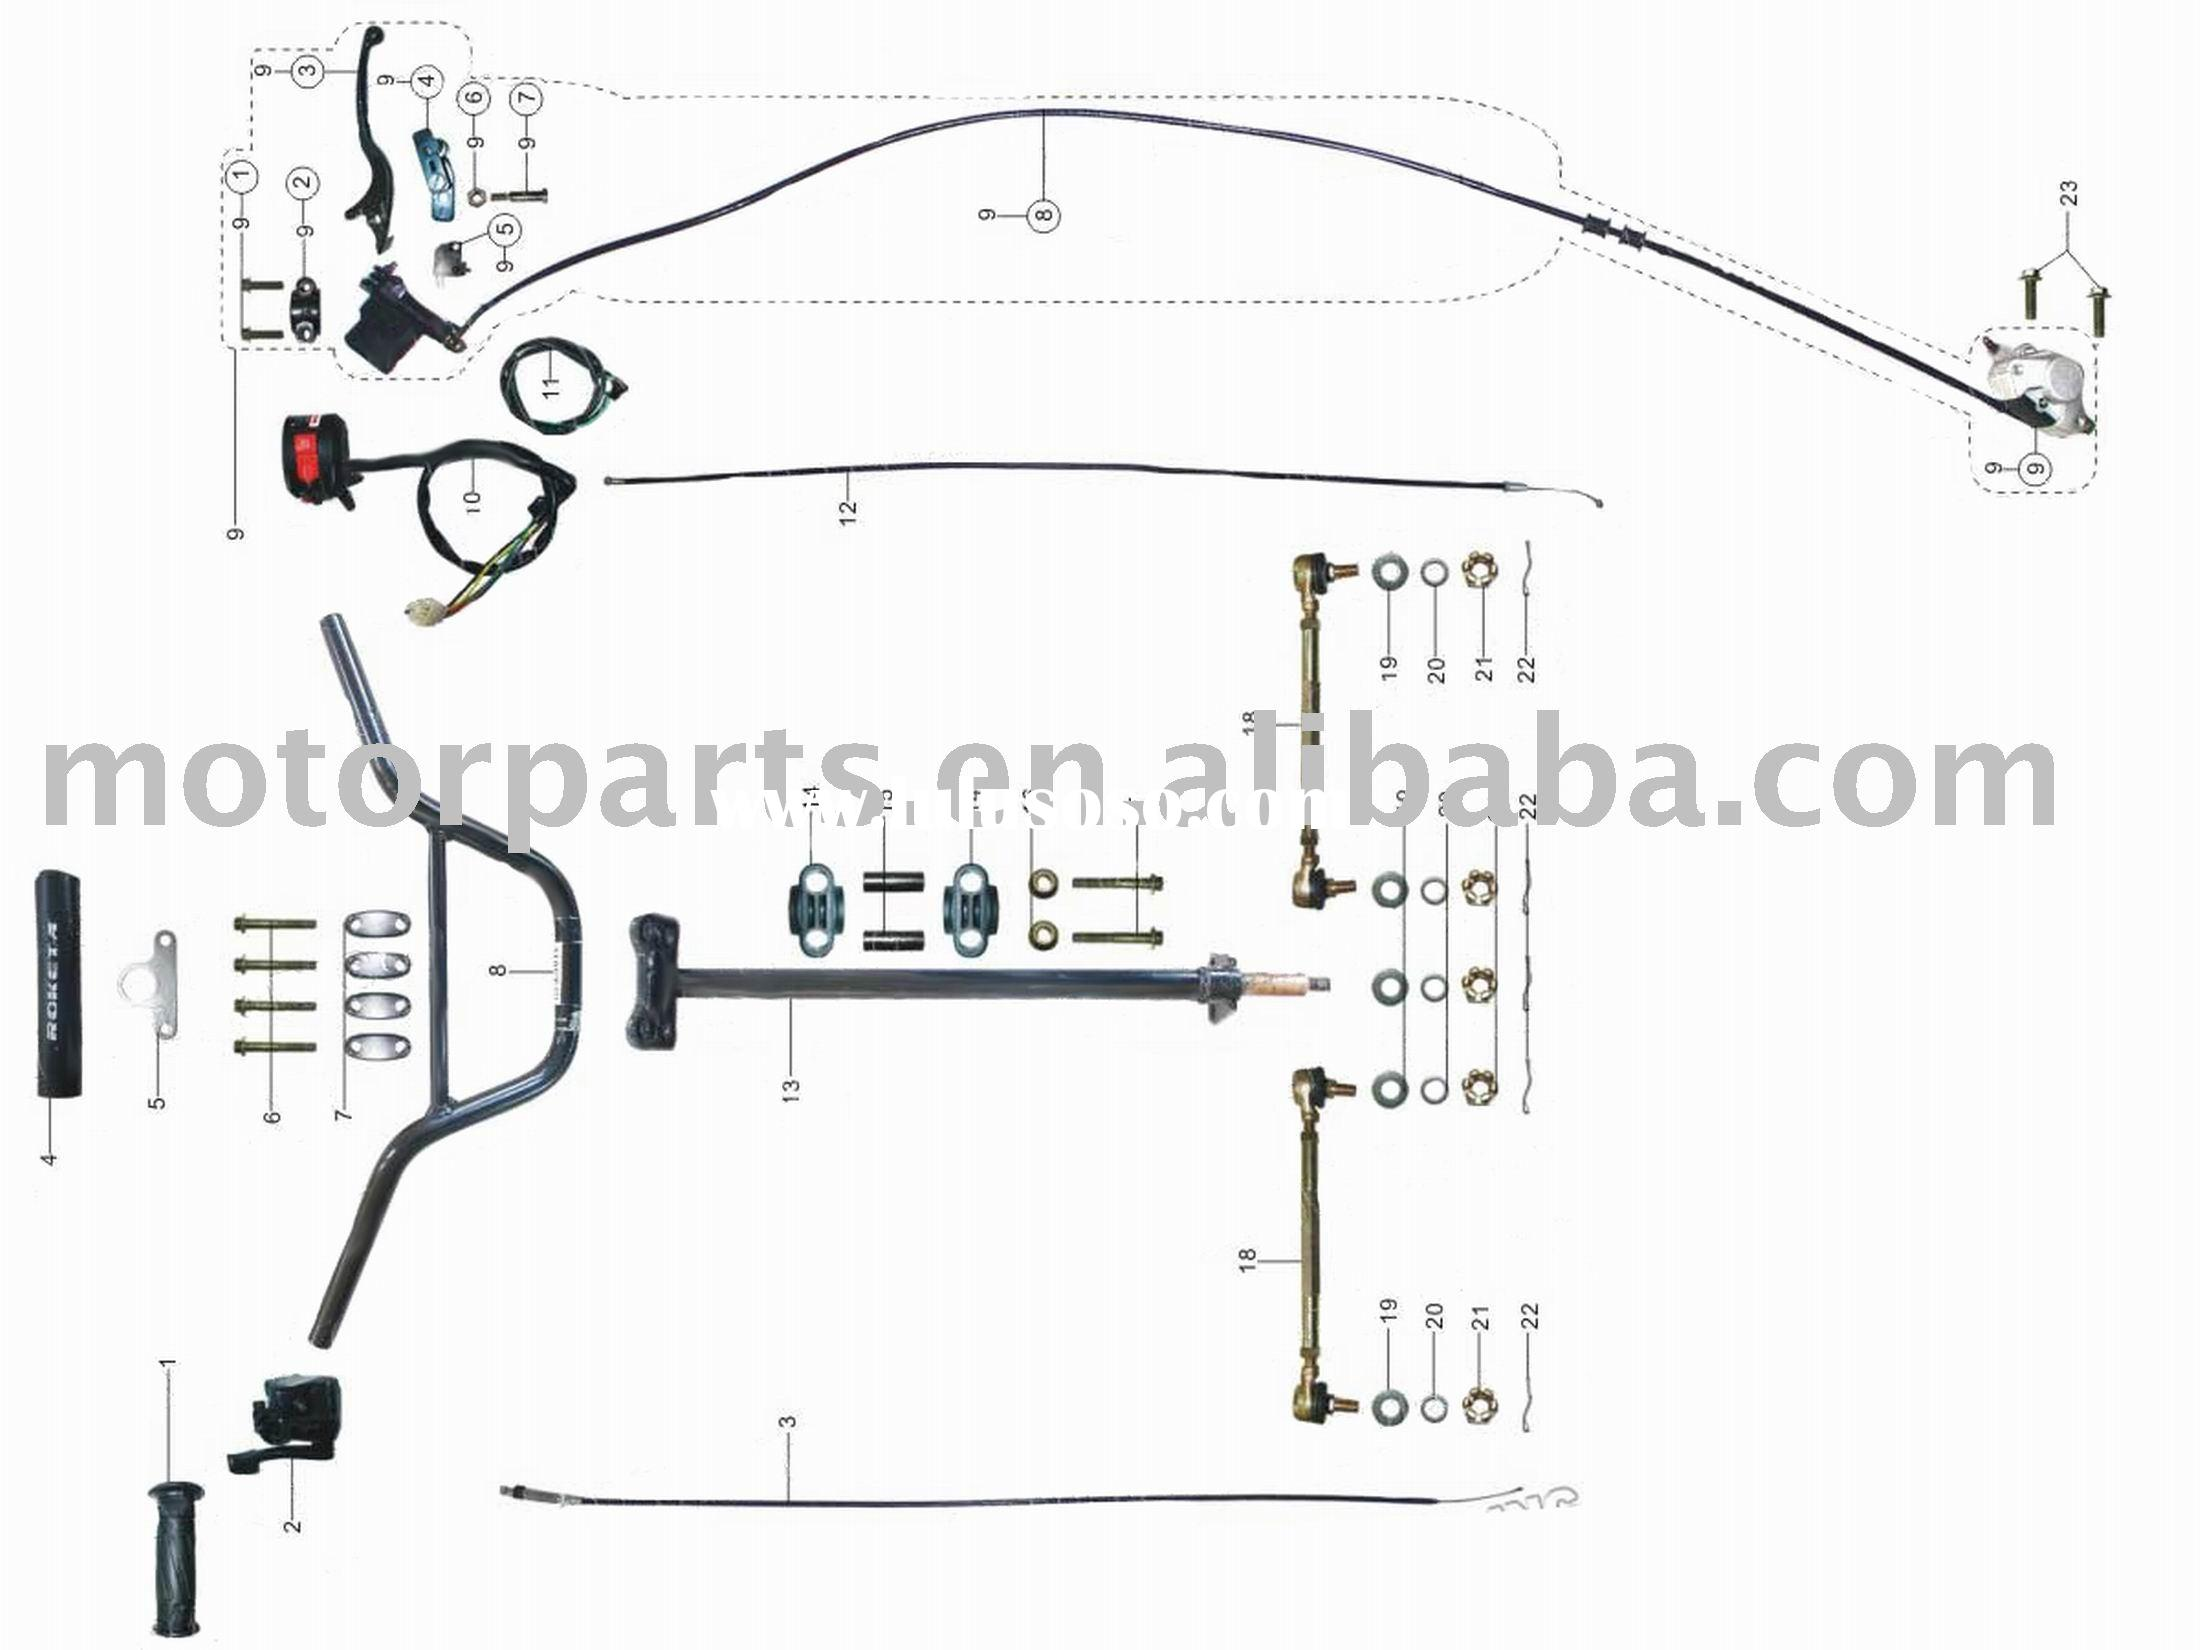 Wiring Diagram Also 110 Atv Likewise 4. Diagram. Auto